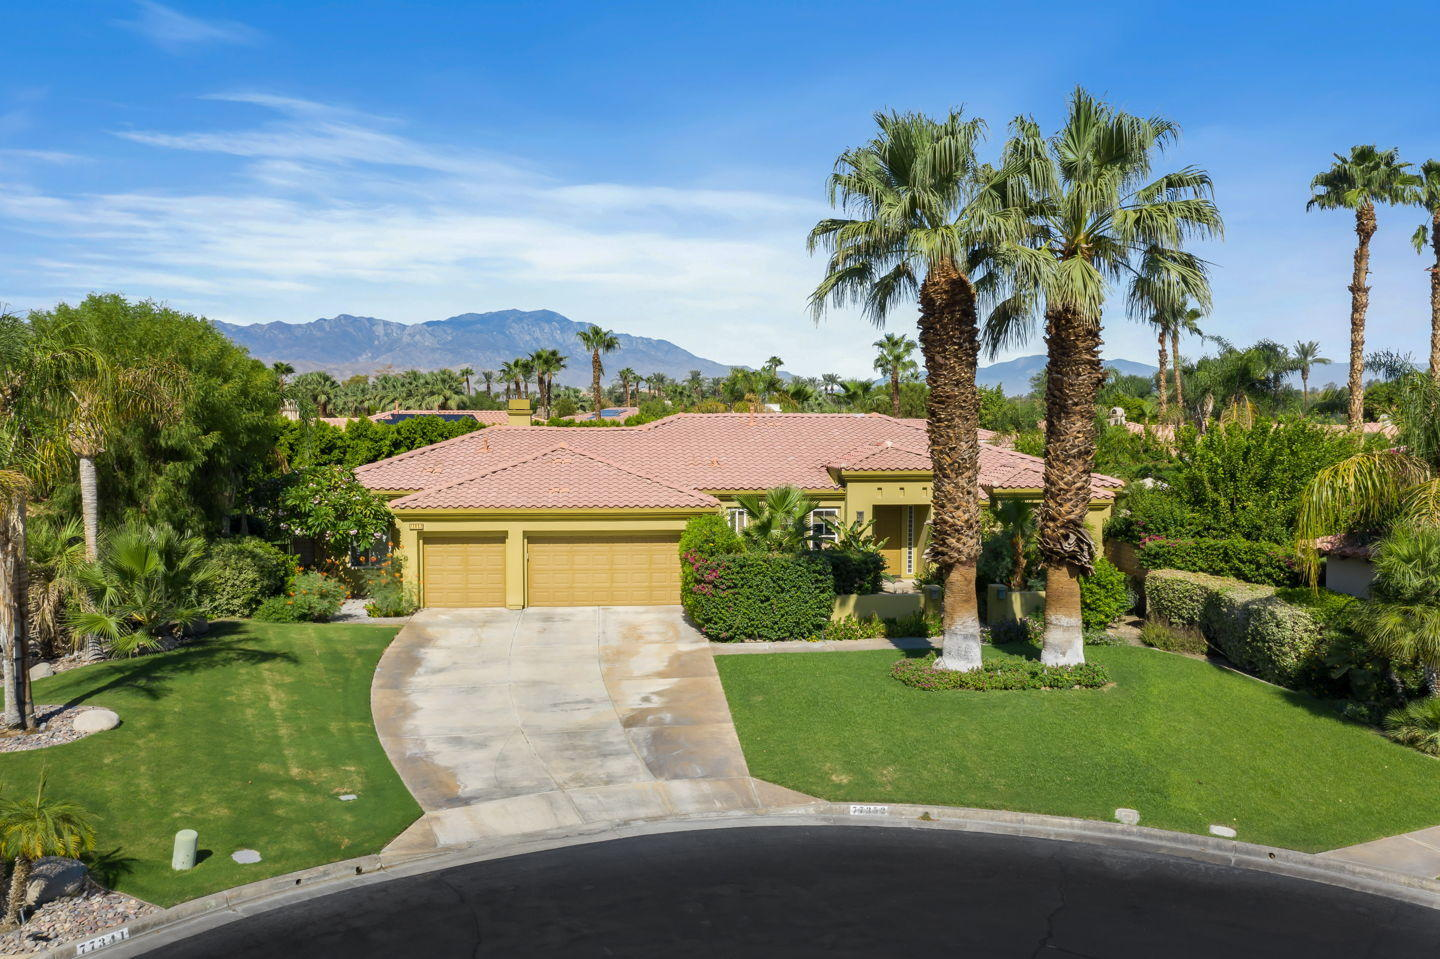 77352 Box Ridge Place, Indian Wells, California 92210, 3 Bedrooms Bedrooms, ,4 BathroomsBathrooms,Residential,For Sale,77352 Box Ridge Place,219030088